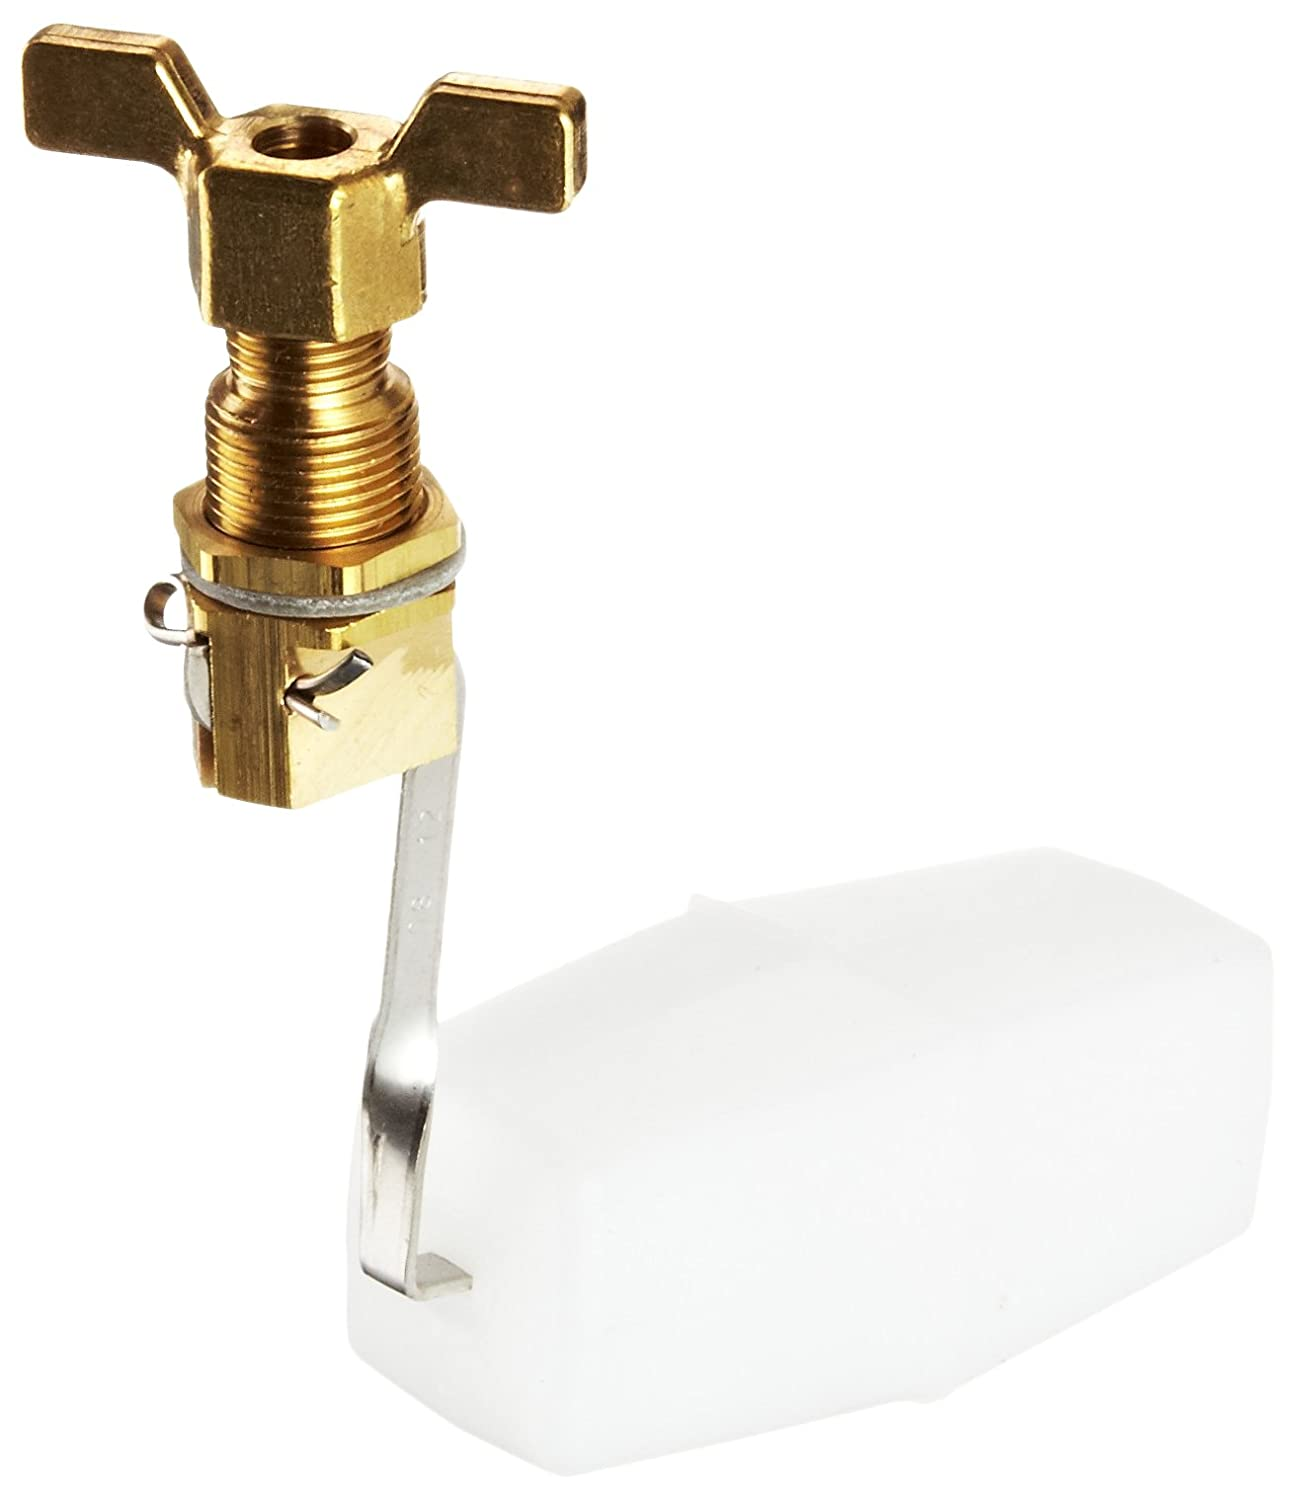 3//64 Orifice 125 psi Pressure 1//4 Compression Wing Nut Robert Manufacturing RM292 Series Bobby Series Brass Miniature Valve and Float Assembly